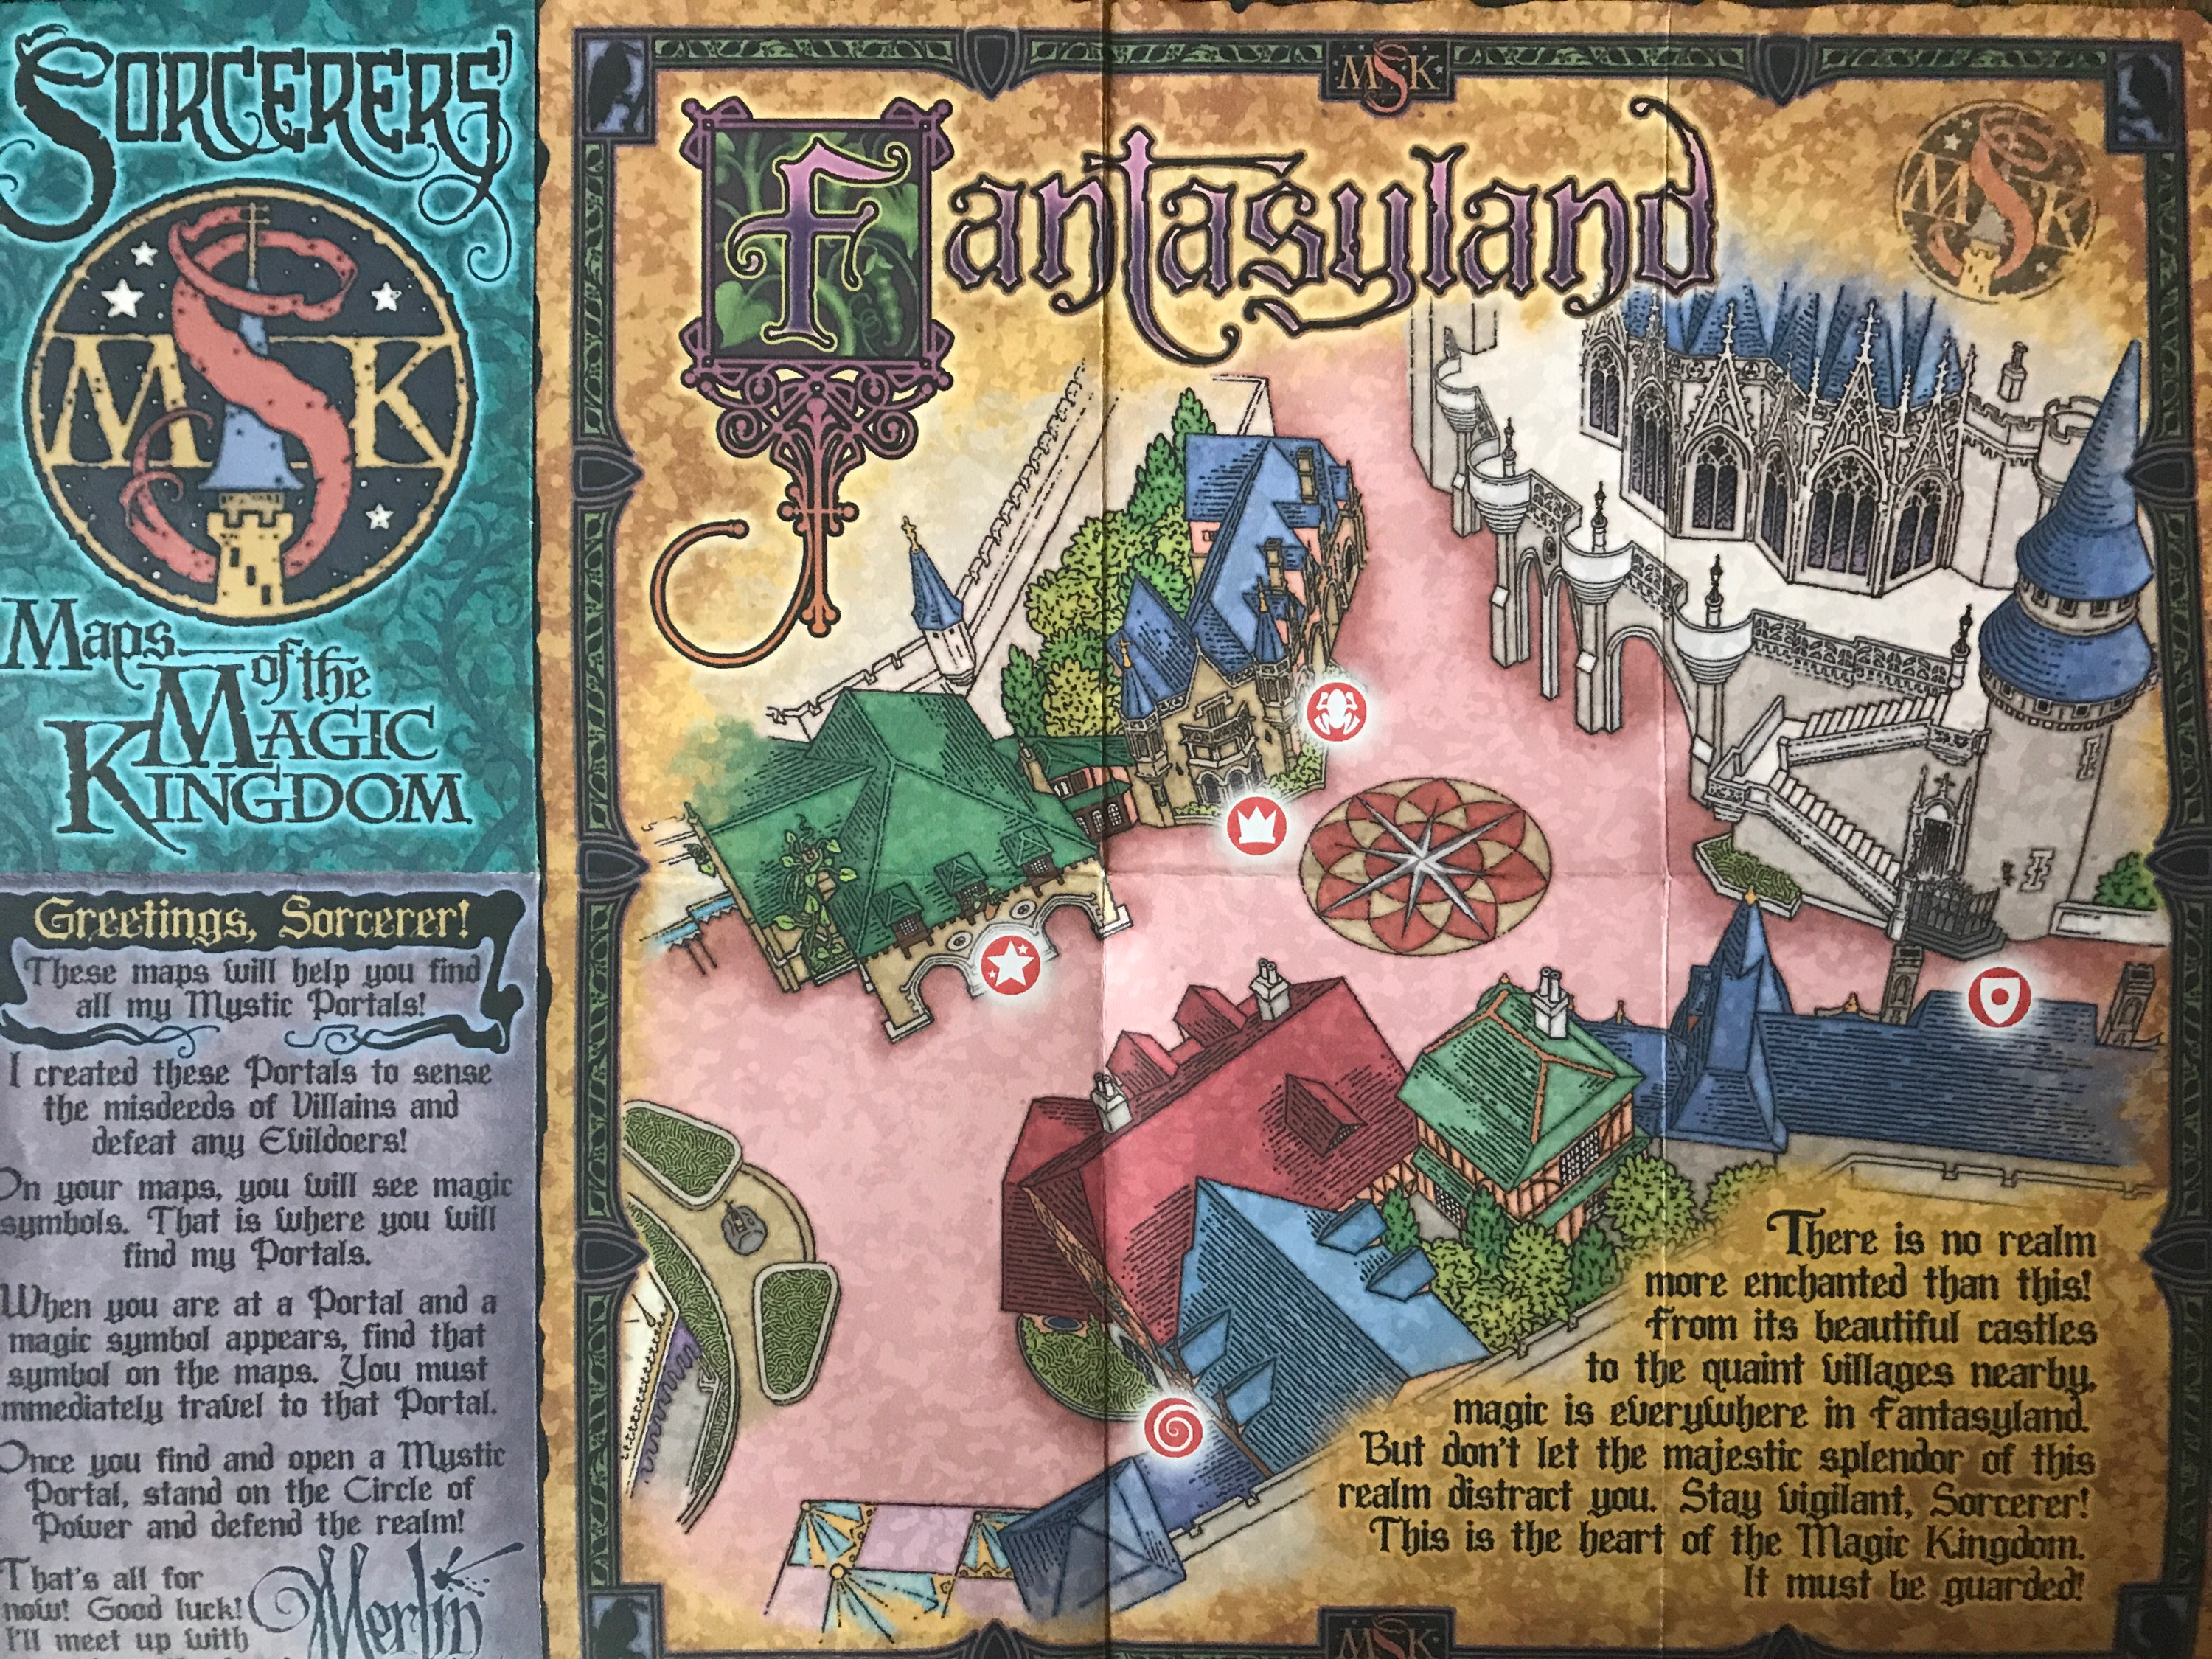 Fantasy Land Map in Sorcerers of the Magic Kingdom